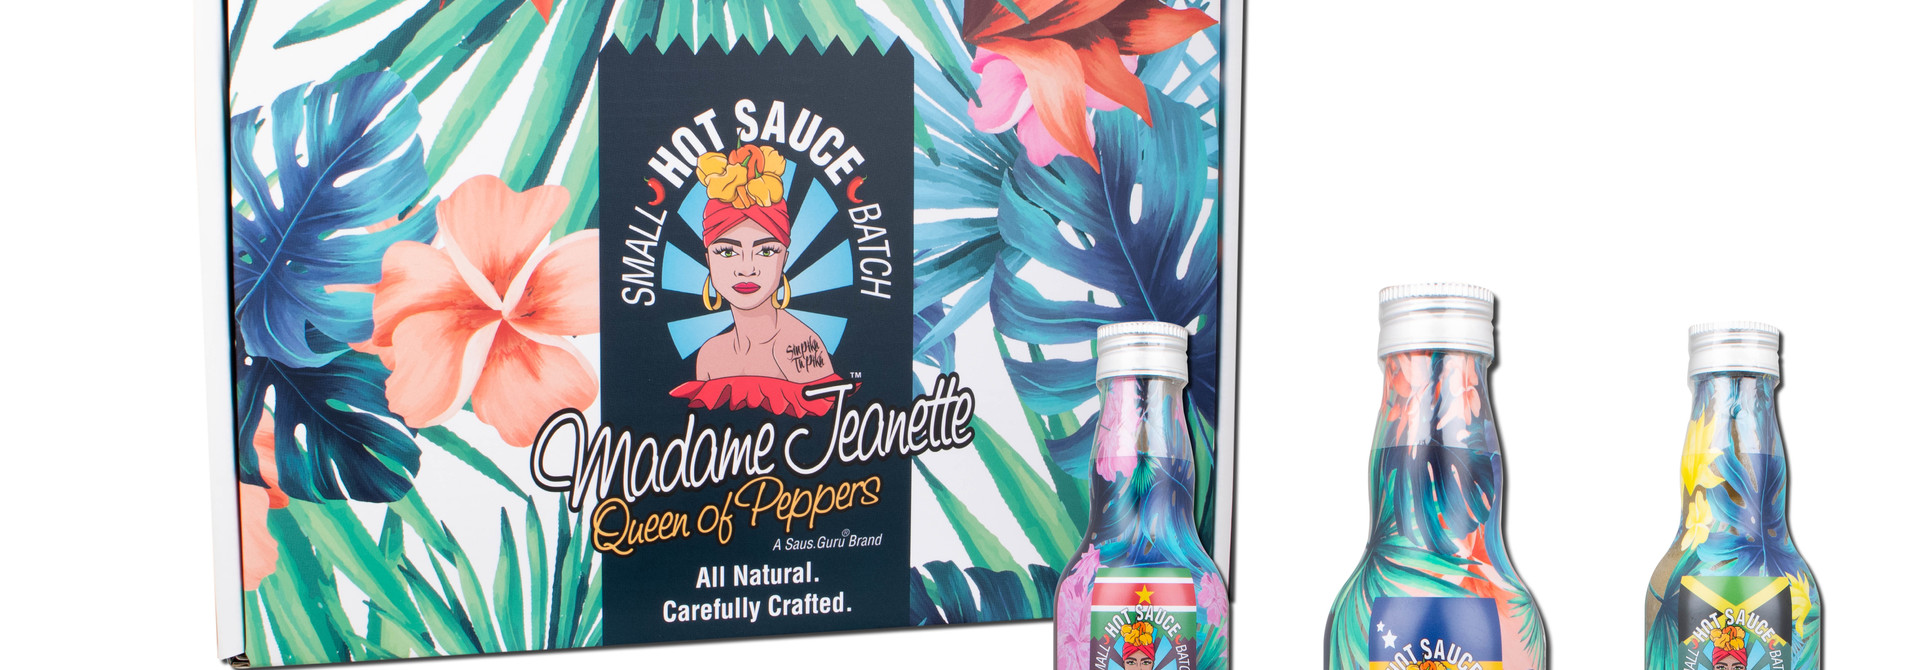 Madame Jeanette Hot Sauce™️ - 3 Bottle Gift Box